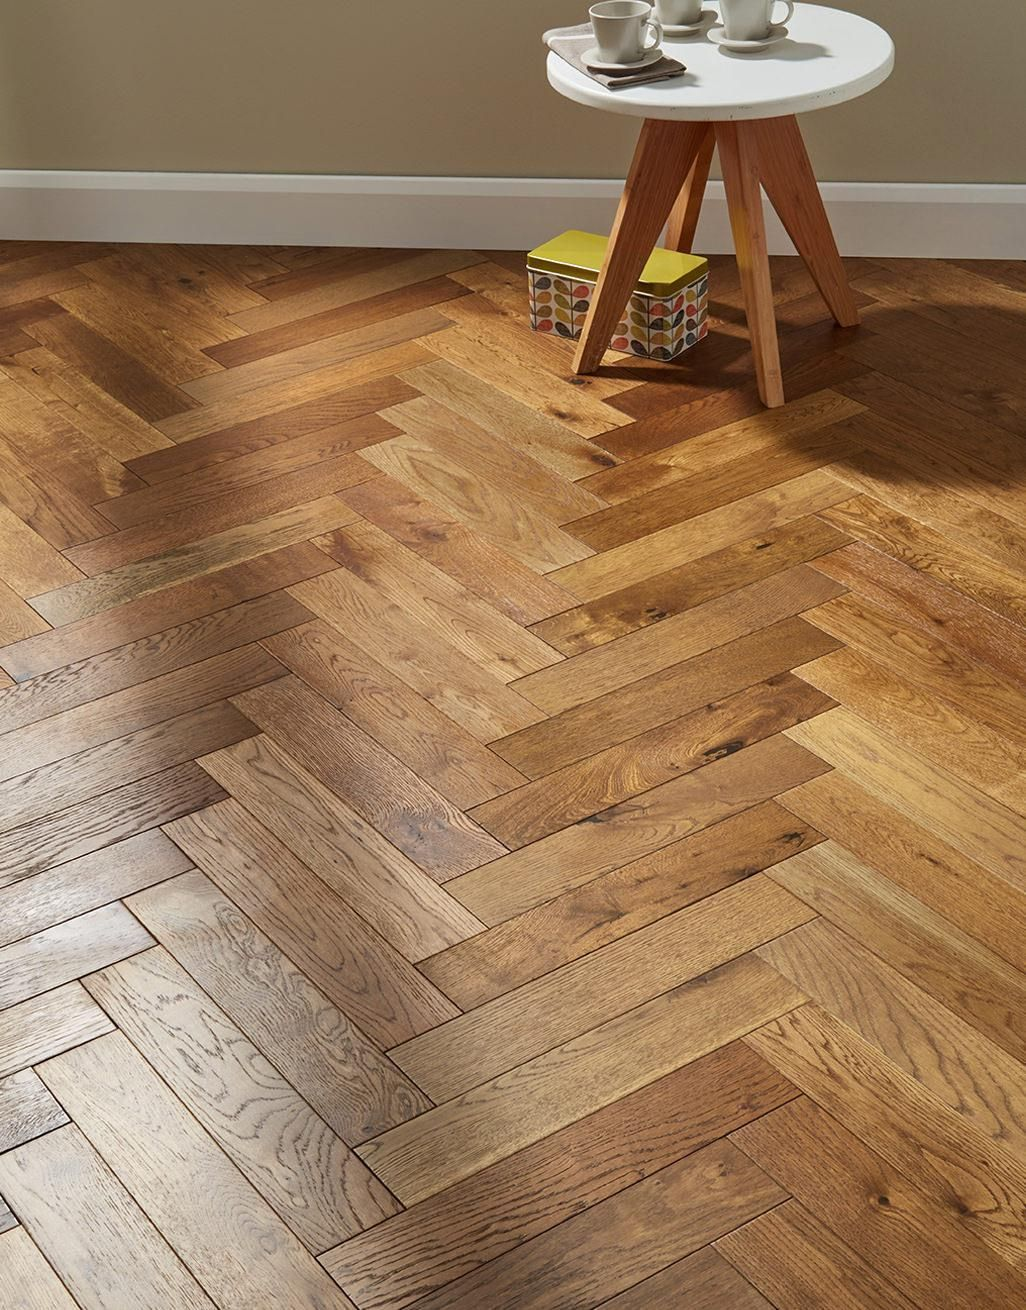 Oxford Herringbone Golden Smoked Oak Engineered Wood Flooring Engineered Wood Floors Herringbone Wood Floor Wood Floor Design